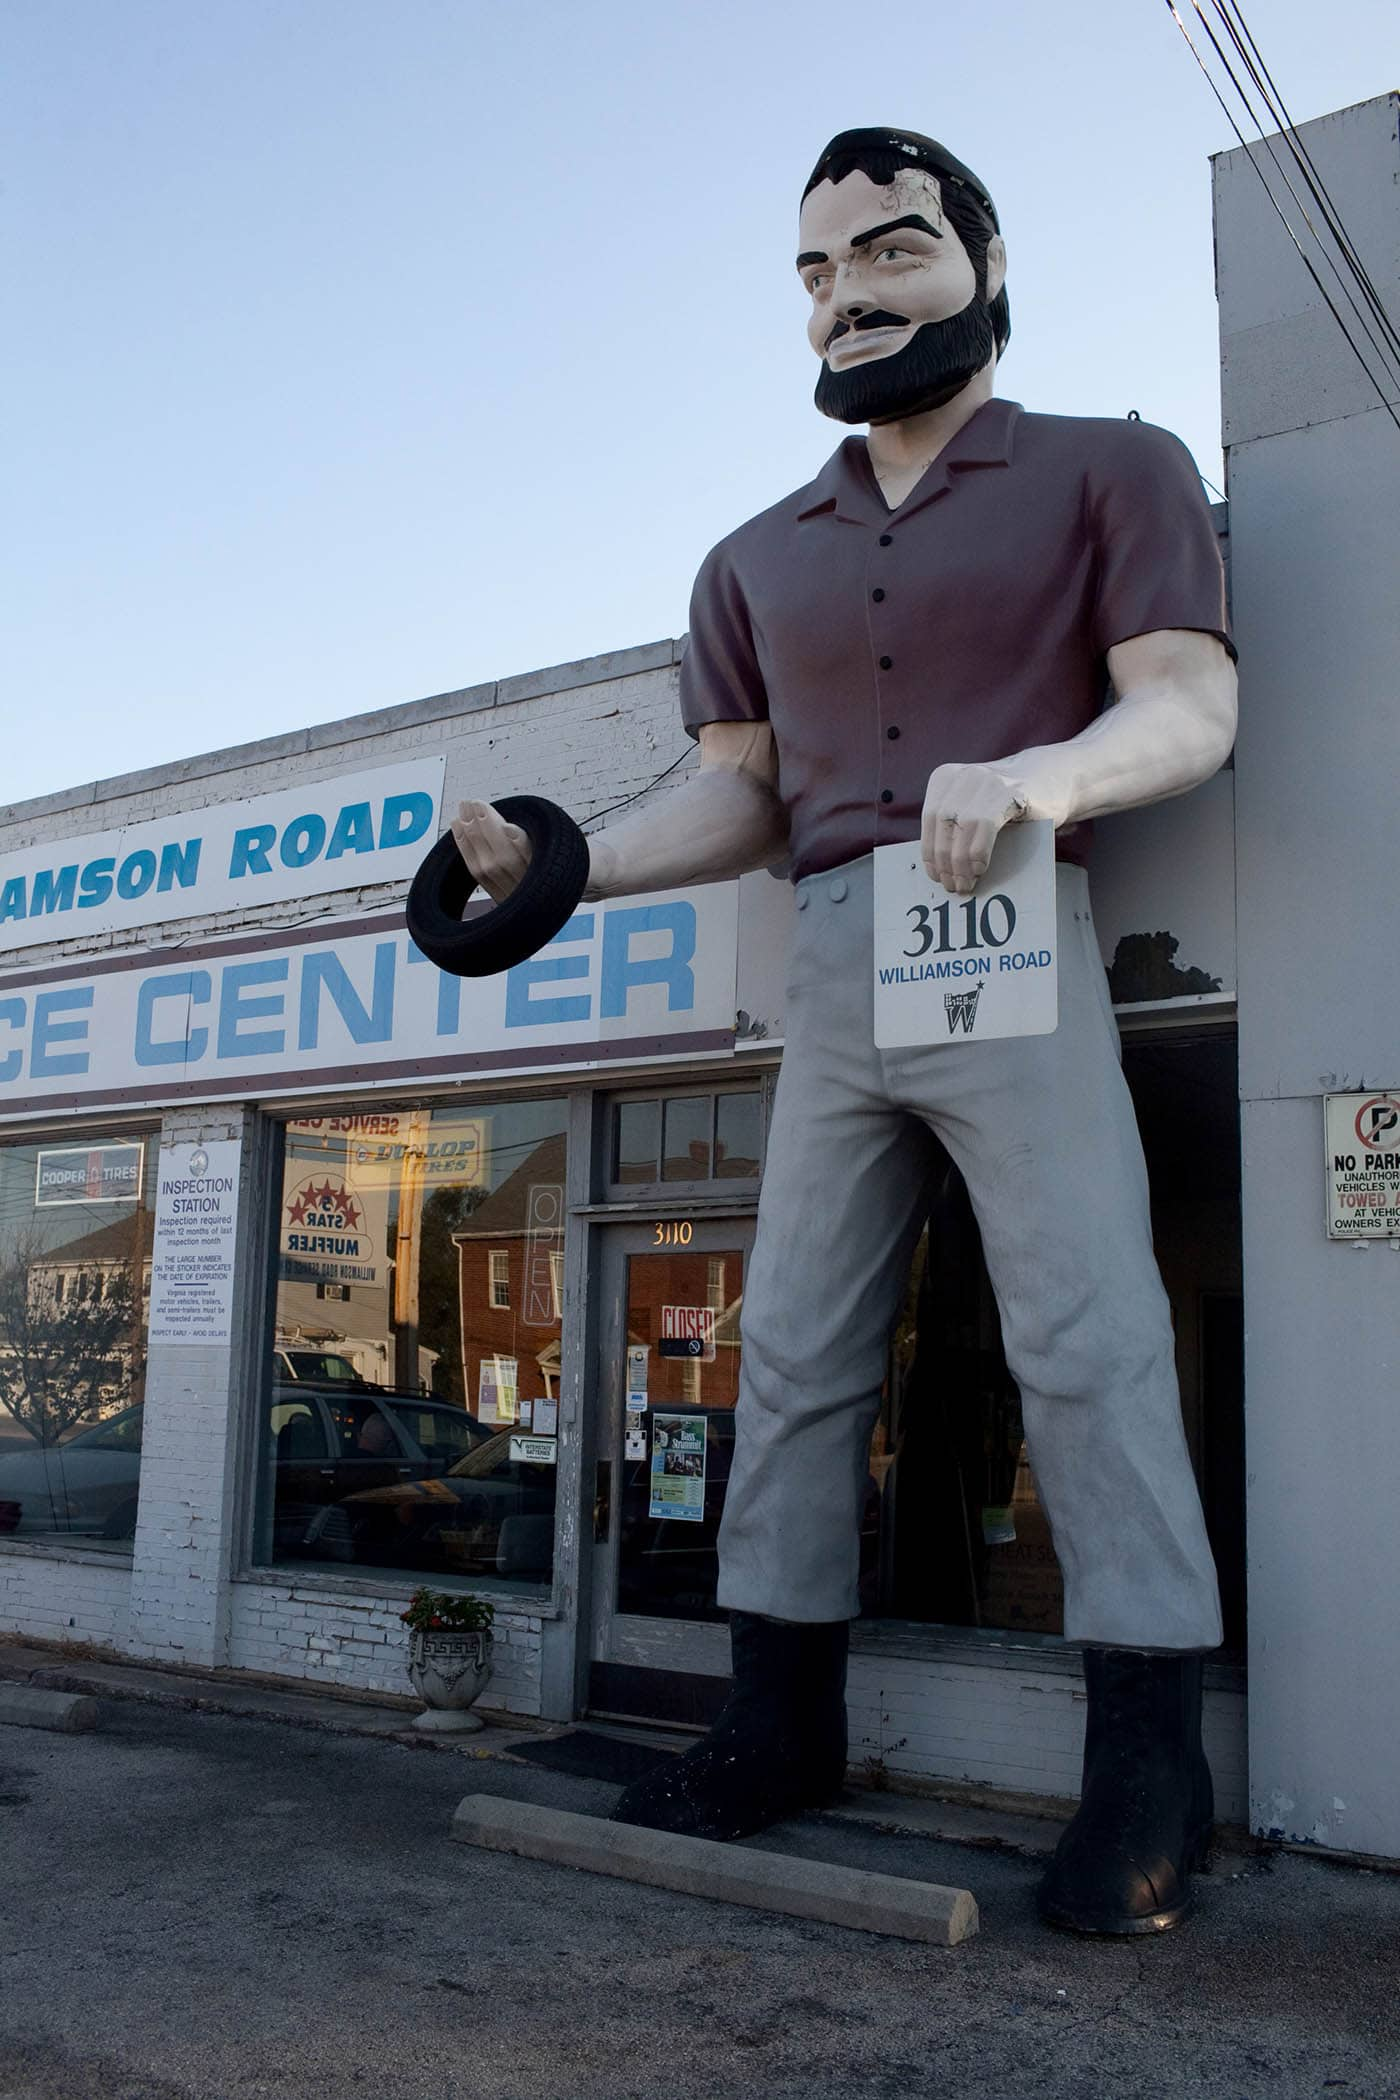 Muffler Man in Roanoke, Virginia